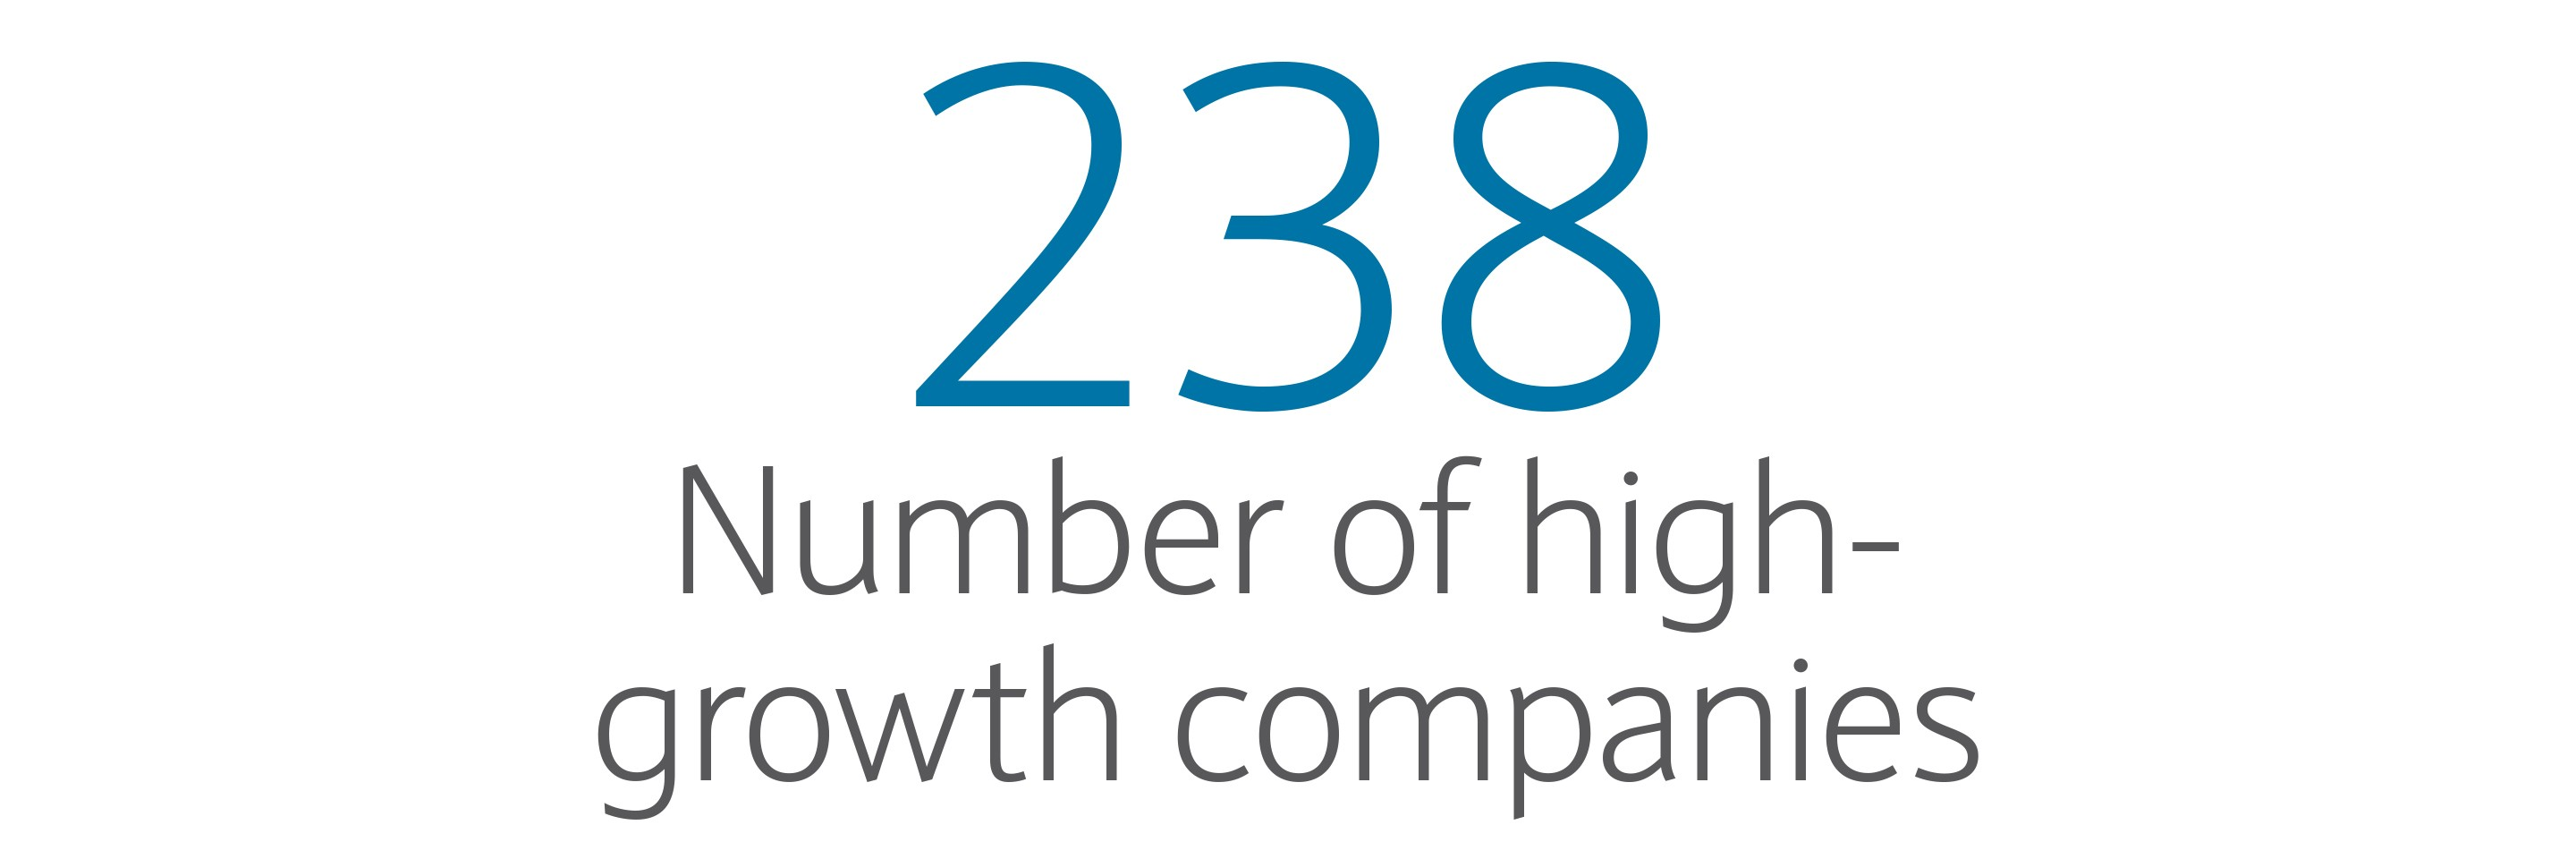 238: Number of high-growth companies